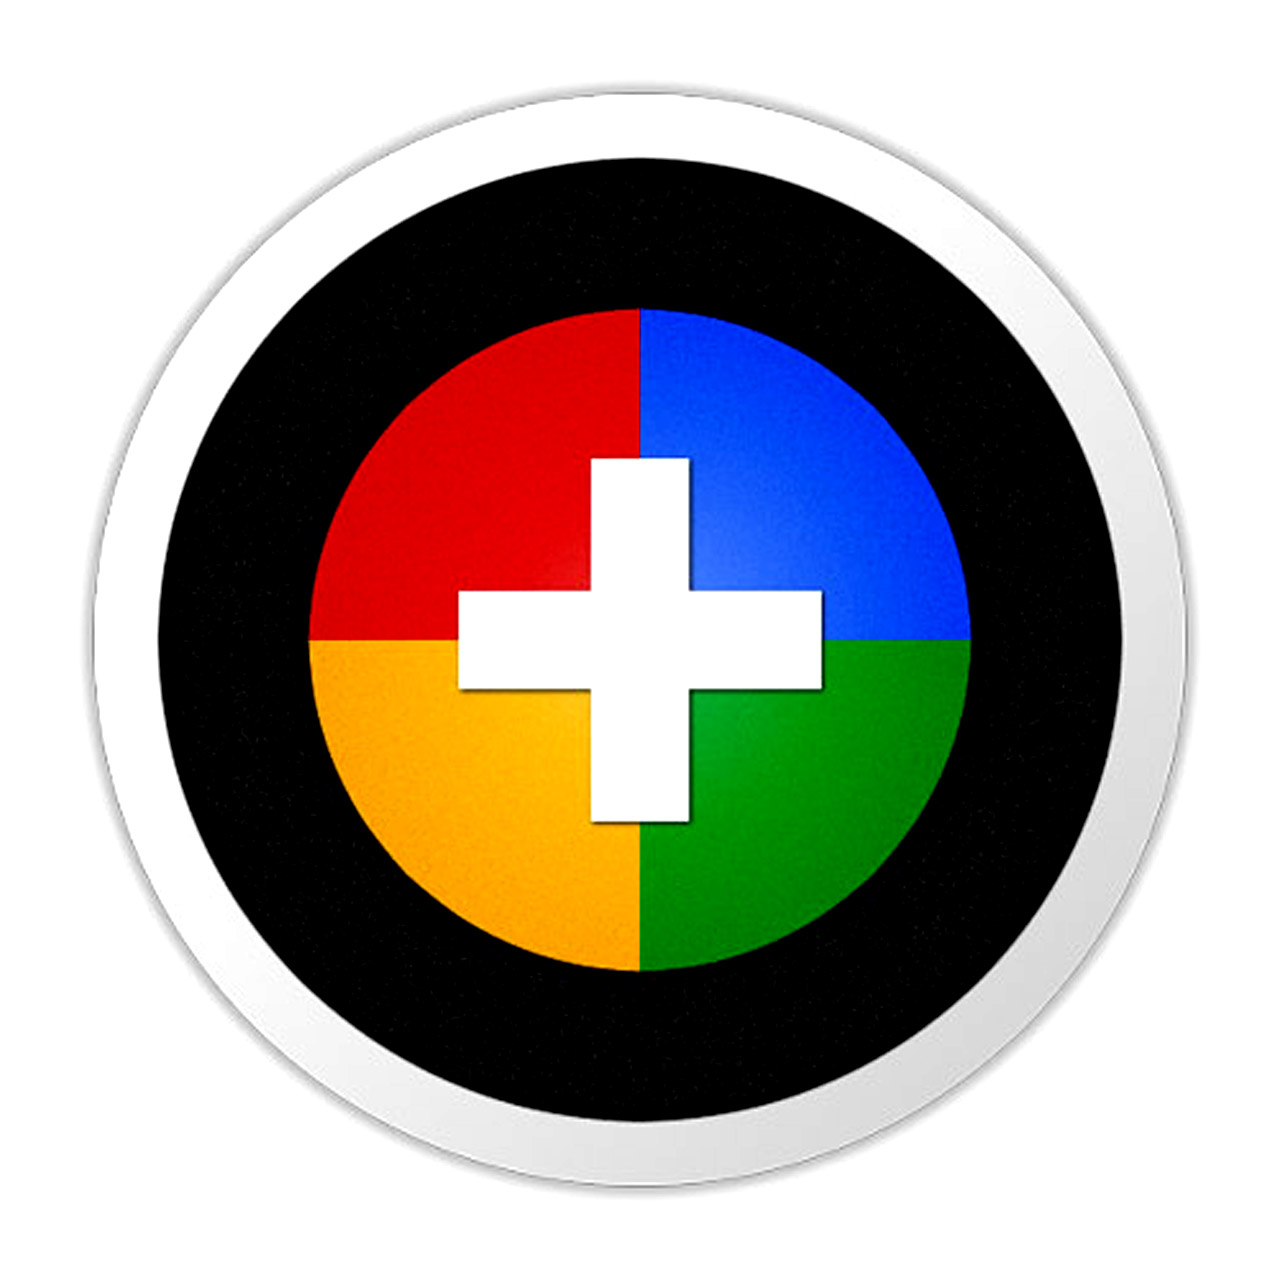 Icon Download Google Plus Logo 1280x1280, Google Plus HD PNG Download